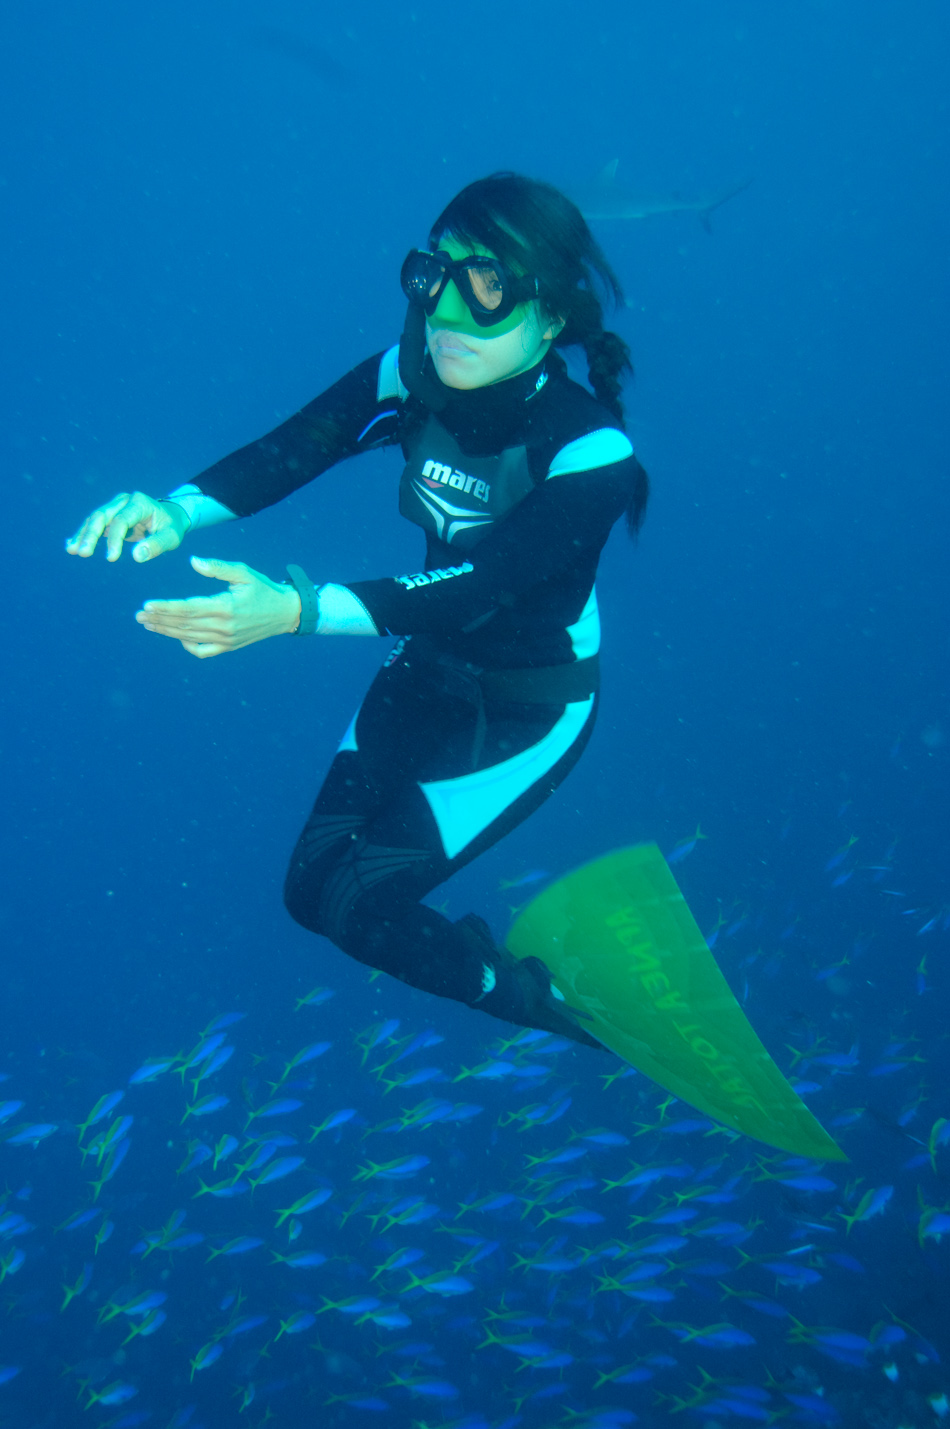 Ai Futaki freedives at Blue Corner, Palau amongst the sharks and fishes